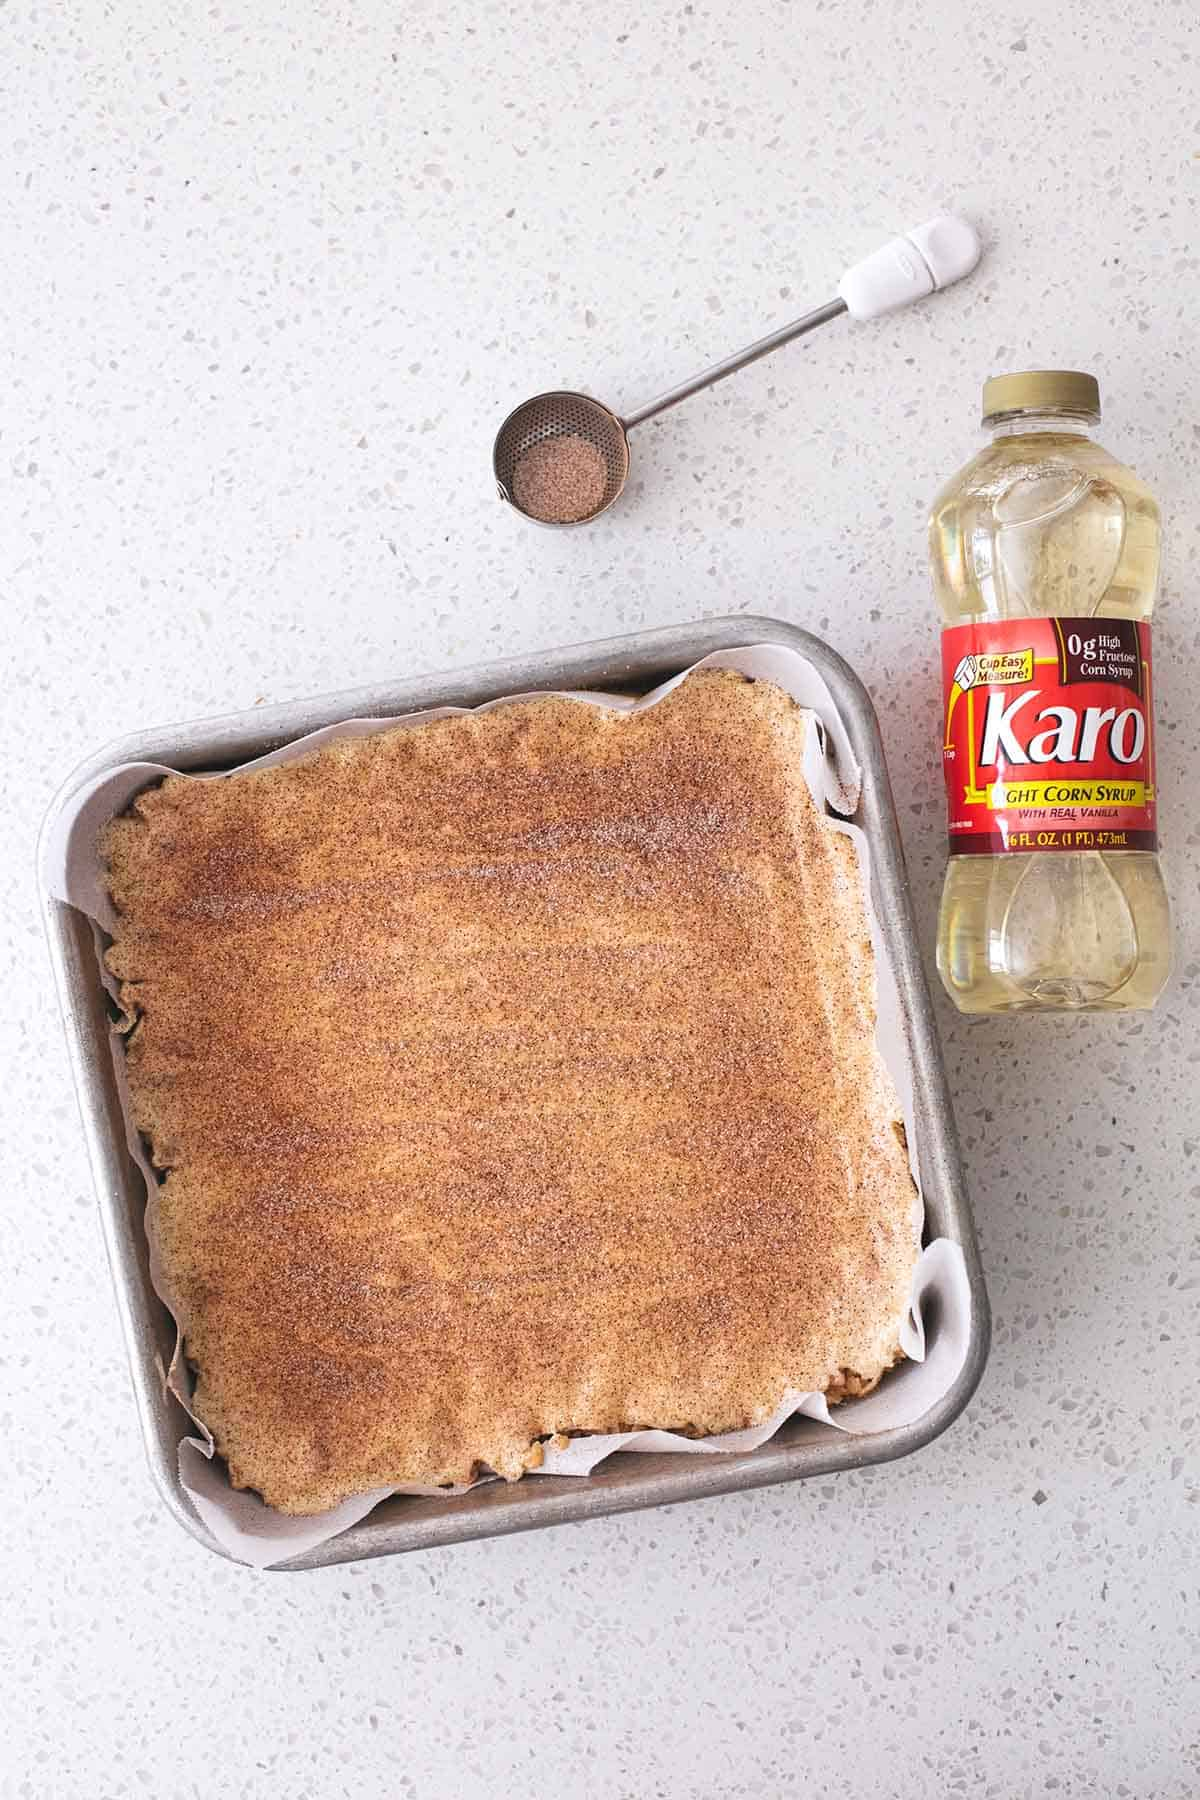 corn syrup on countertop with cinnamon-sugar topped dessert in square pan